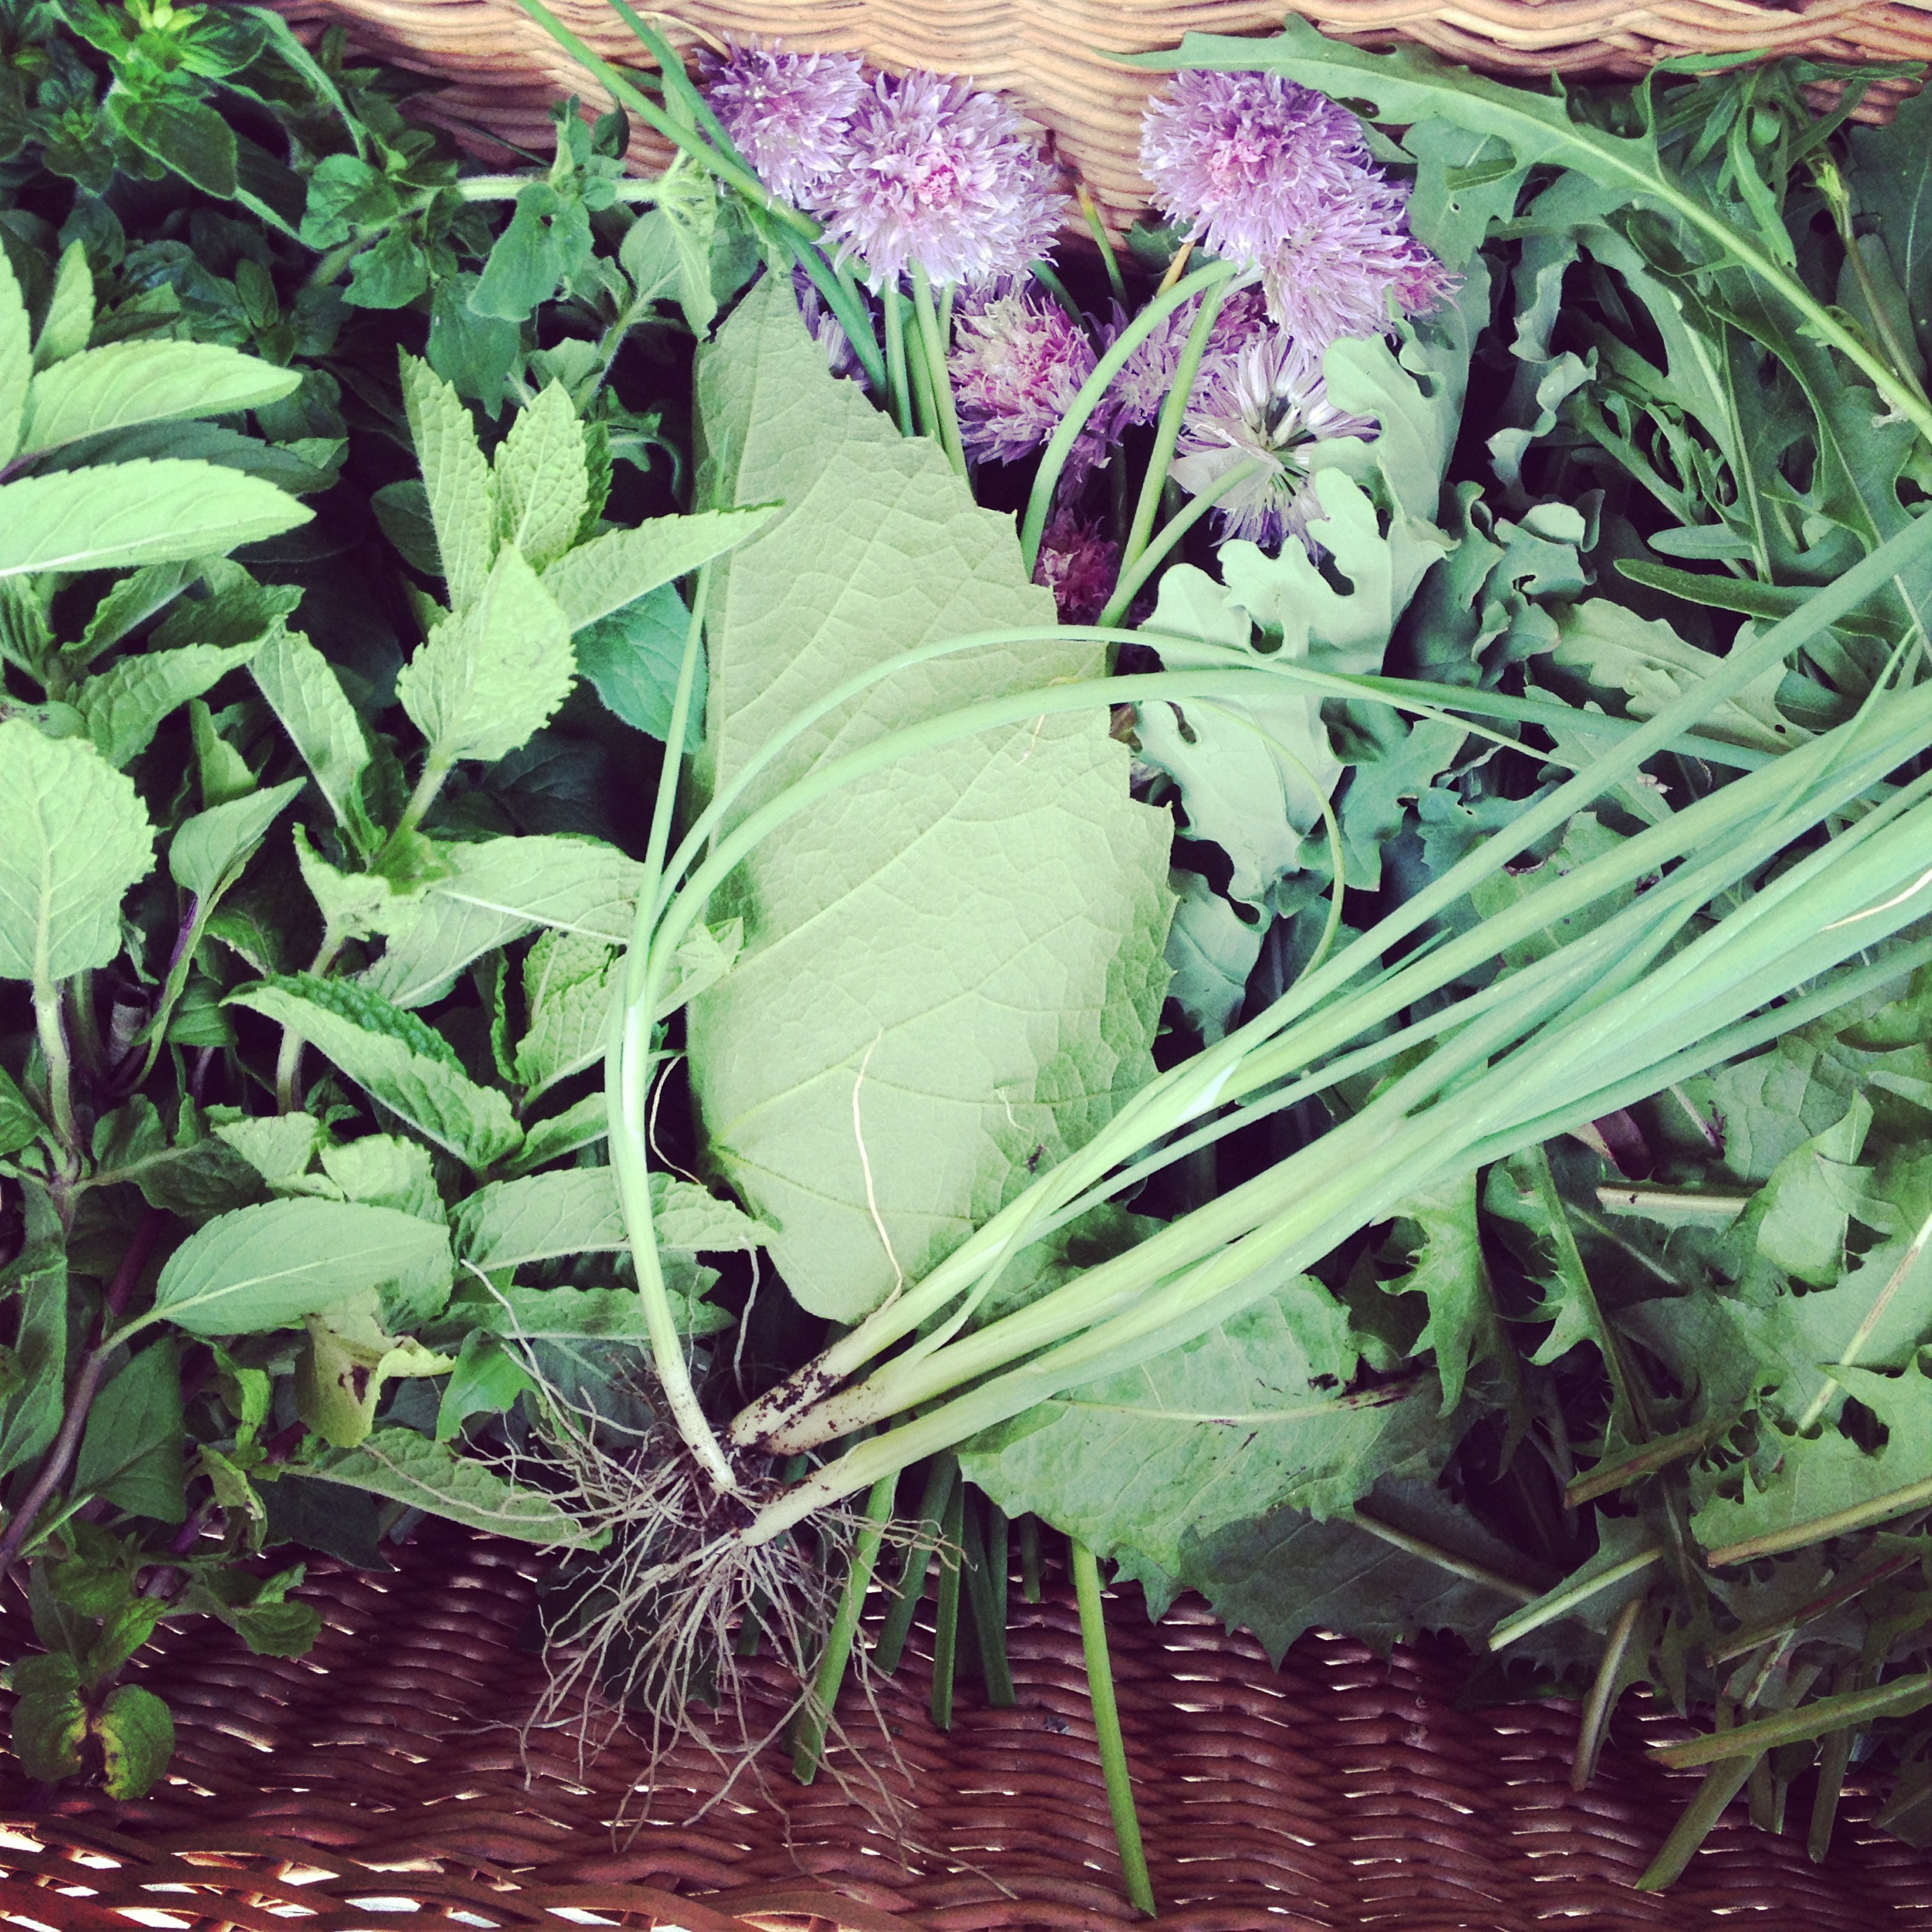 herbs in basket.jpg